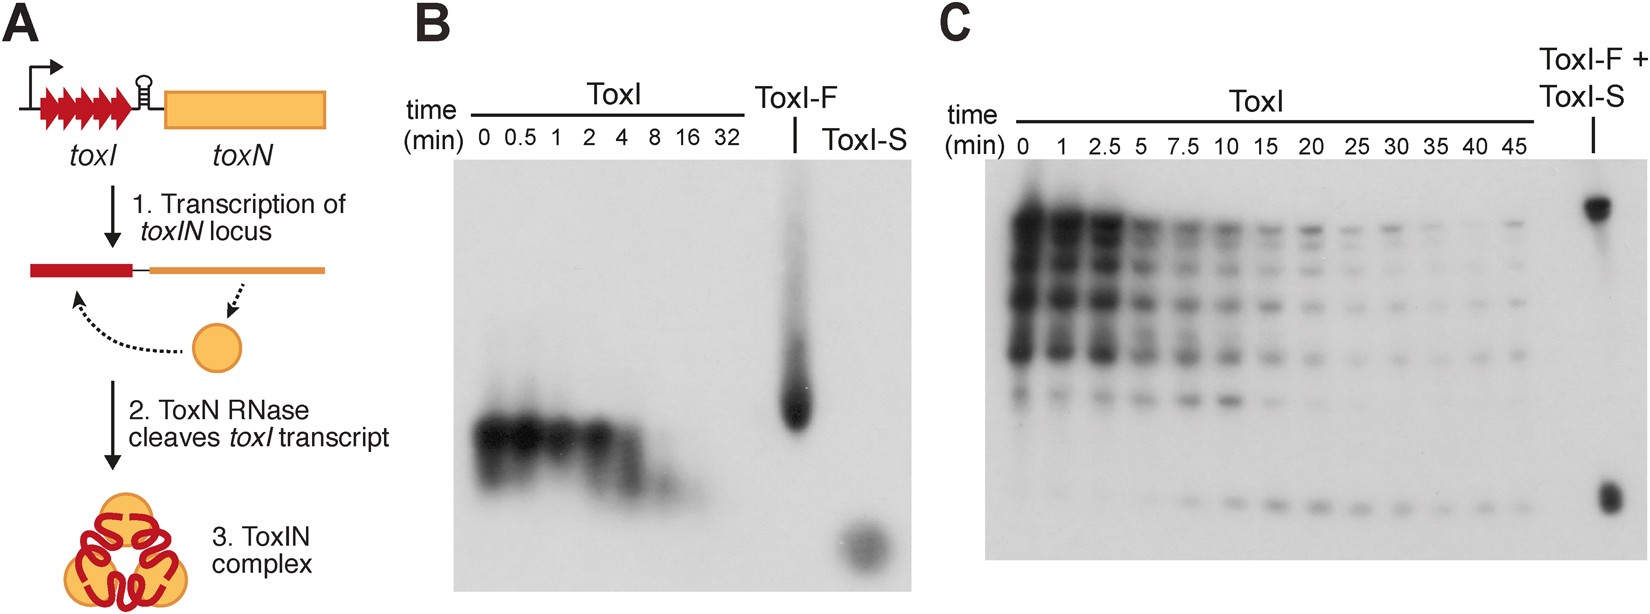 The Bacterial Type Iii Toxin Antitoxin System Is A Dynamic Diagram Furthermore Mini Tennis Court Dimensions Of Protein Rna Complex With Stability Dependent Antiviral Abortive Infection Activity